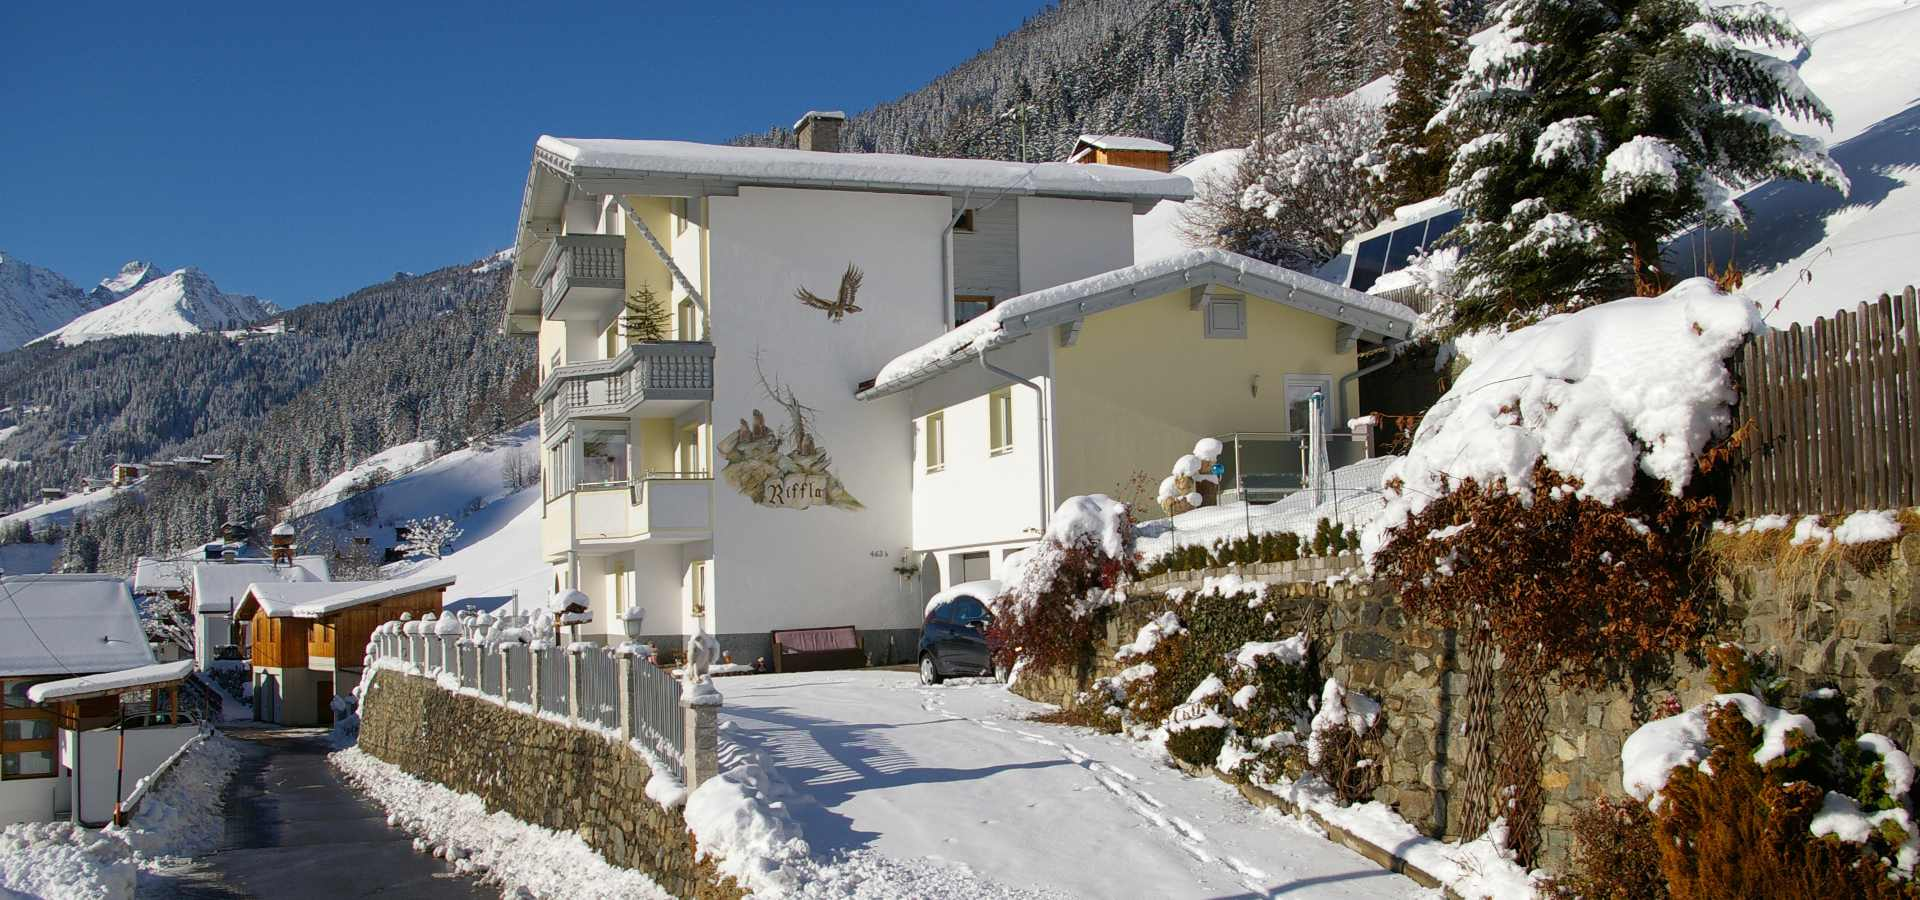 Picture of Haus Riffla